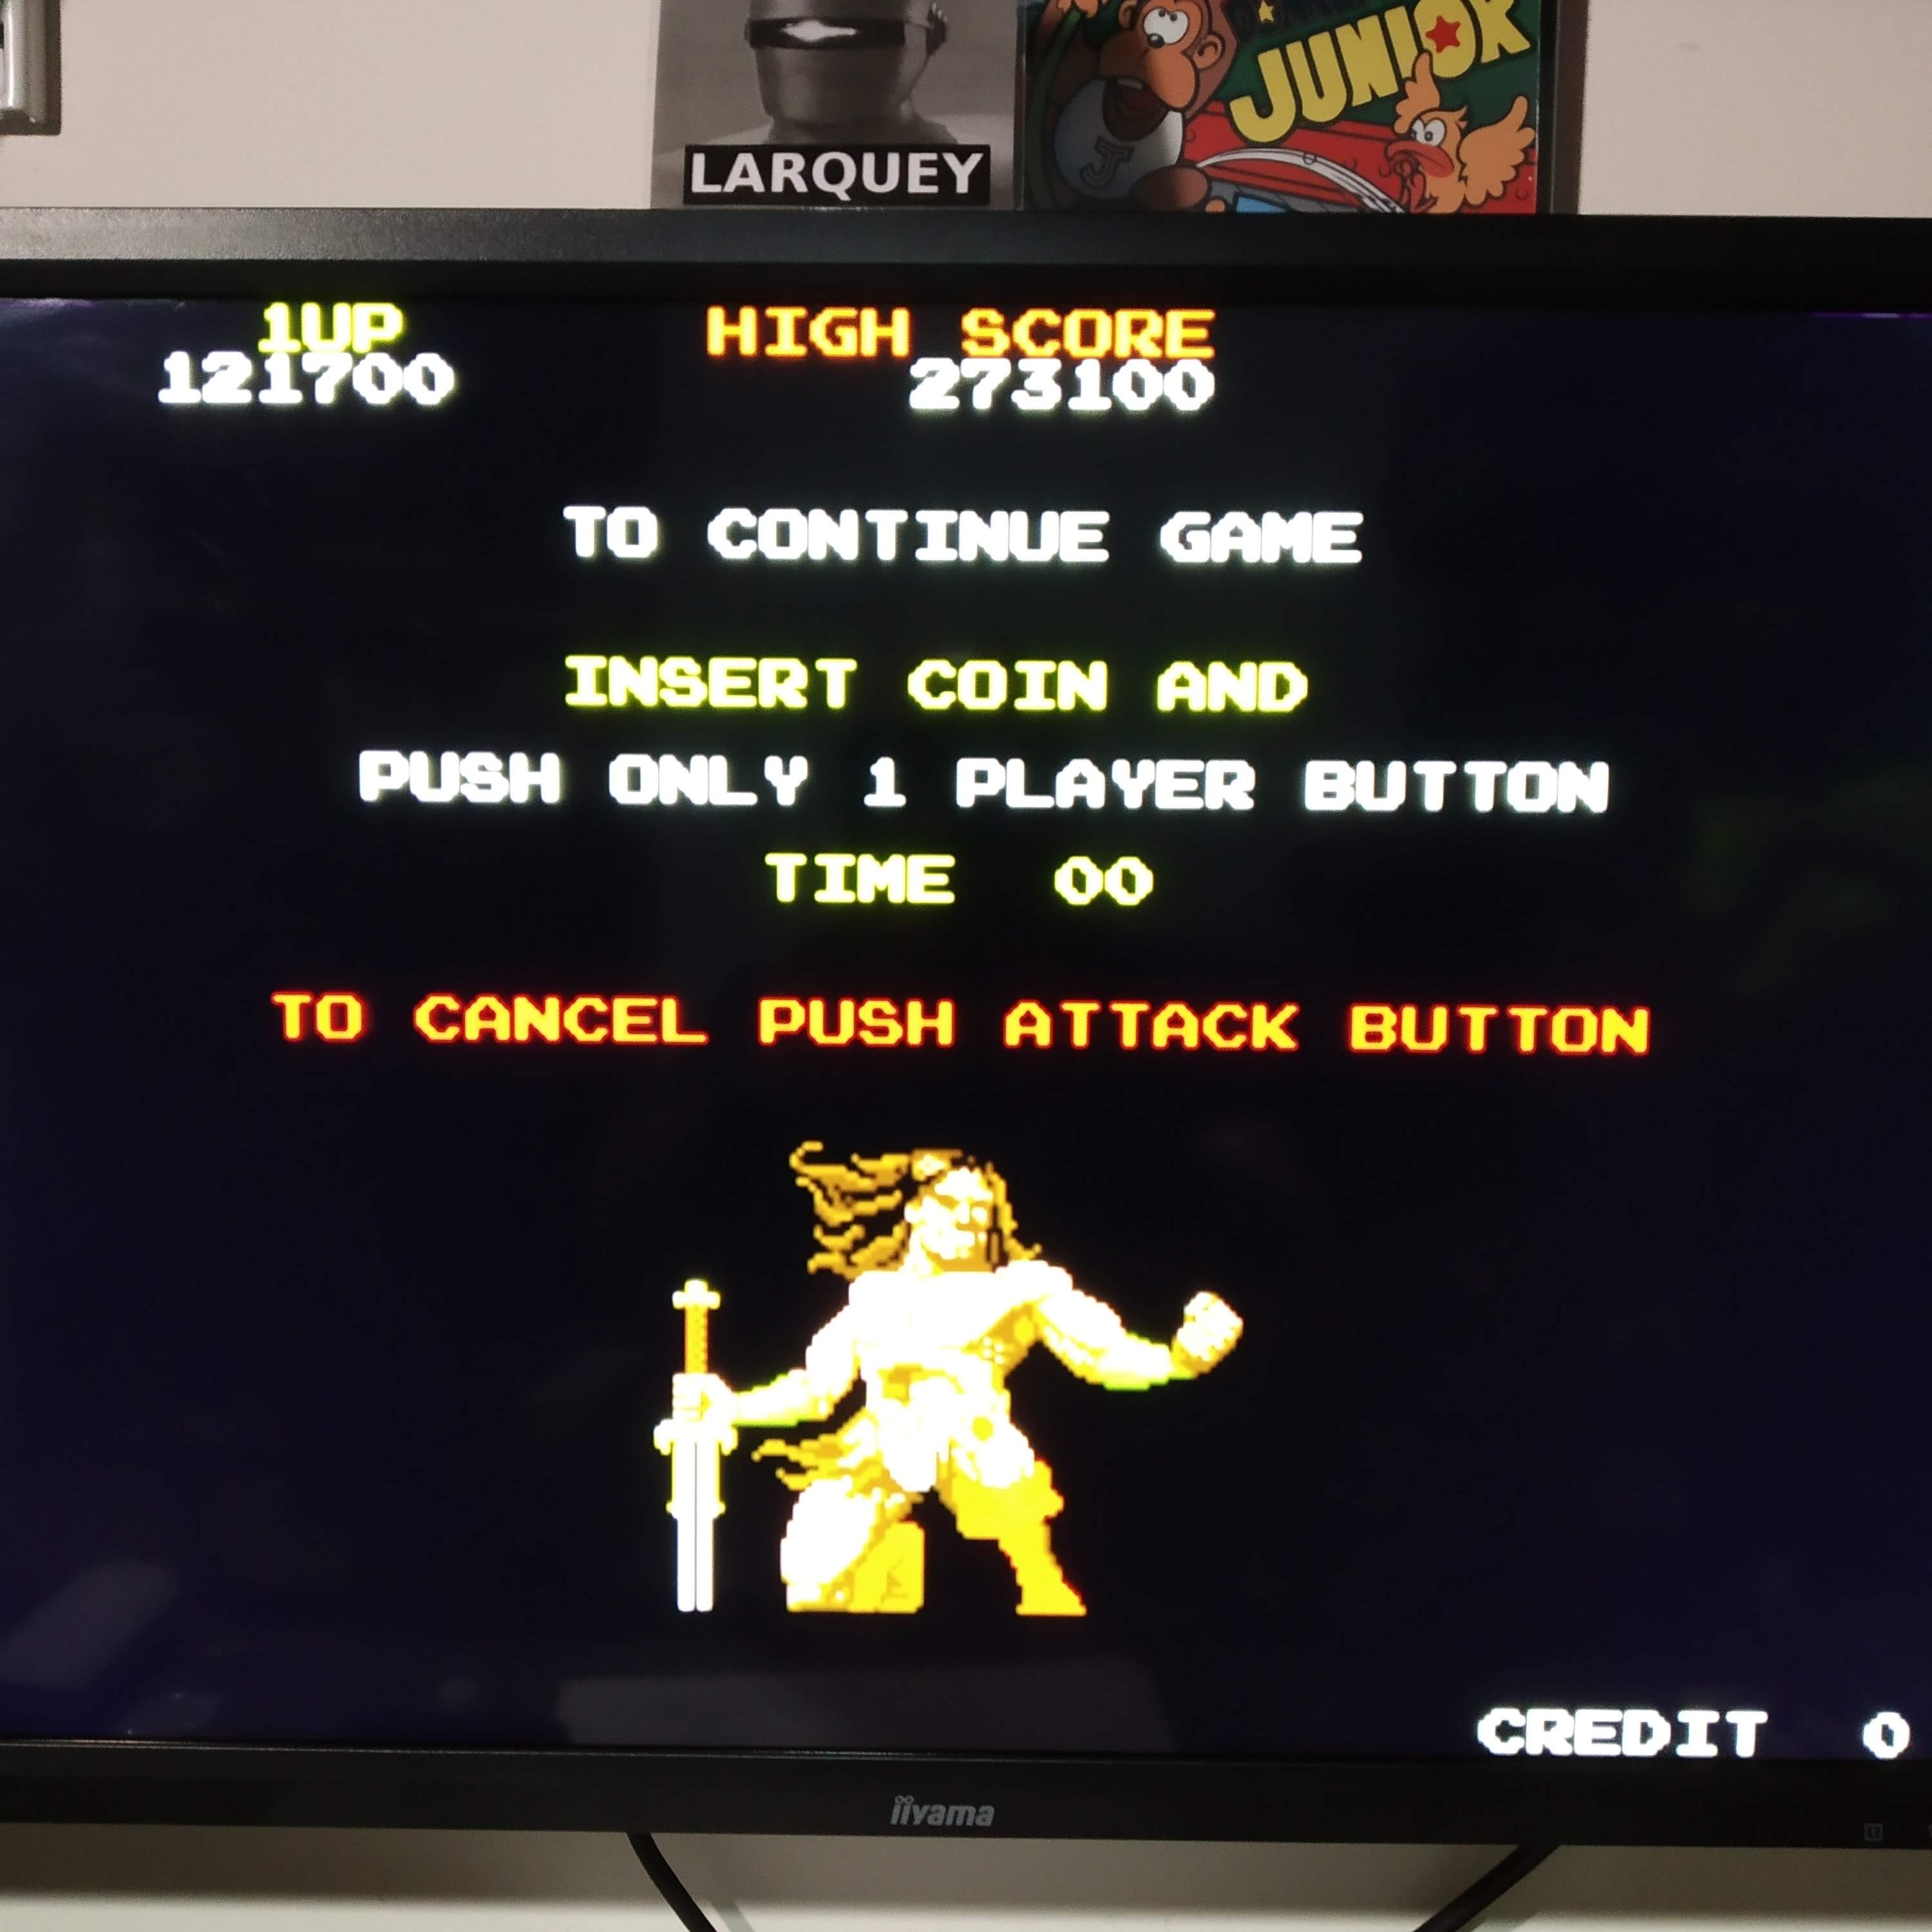 Larquey: Taito Legends: Rastan (Playstation 2 Emulated) 121,700 points on 2020-08-09 03:12:25